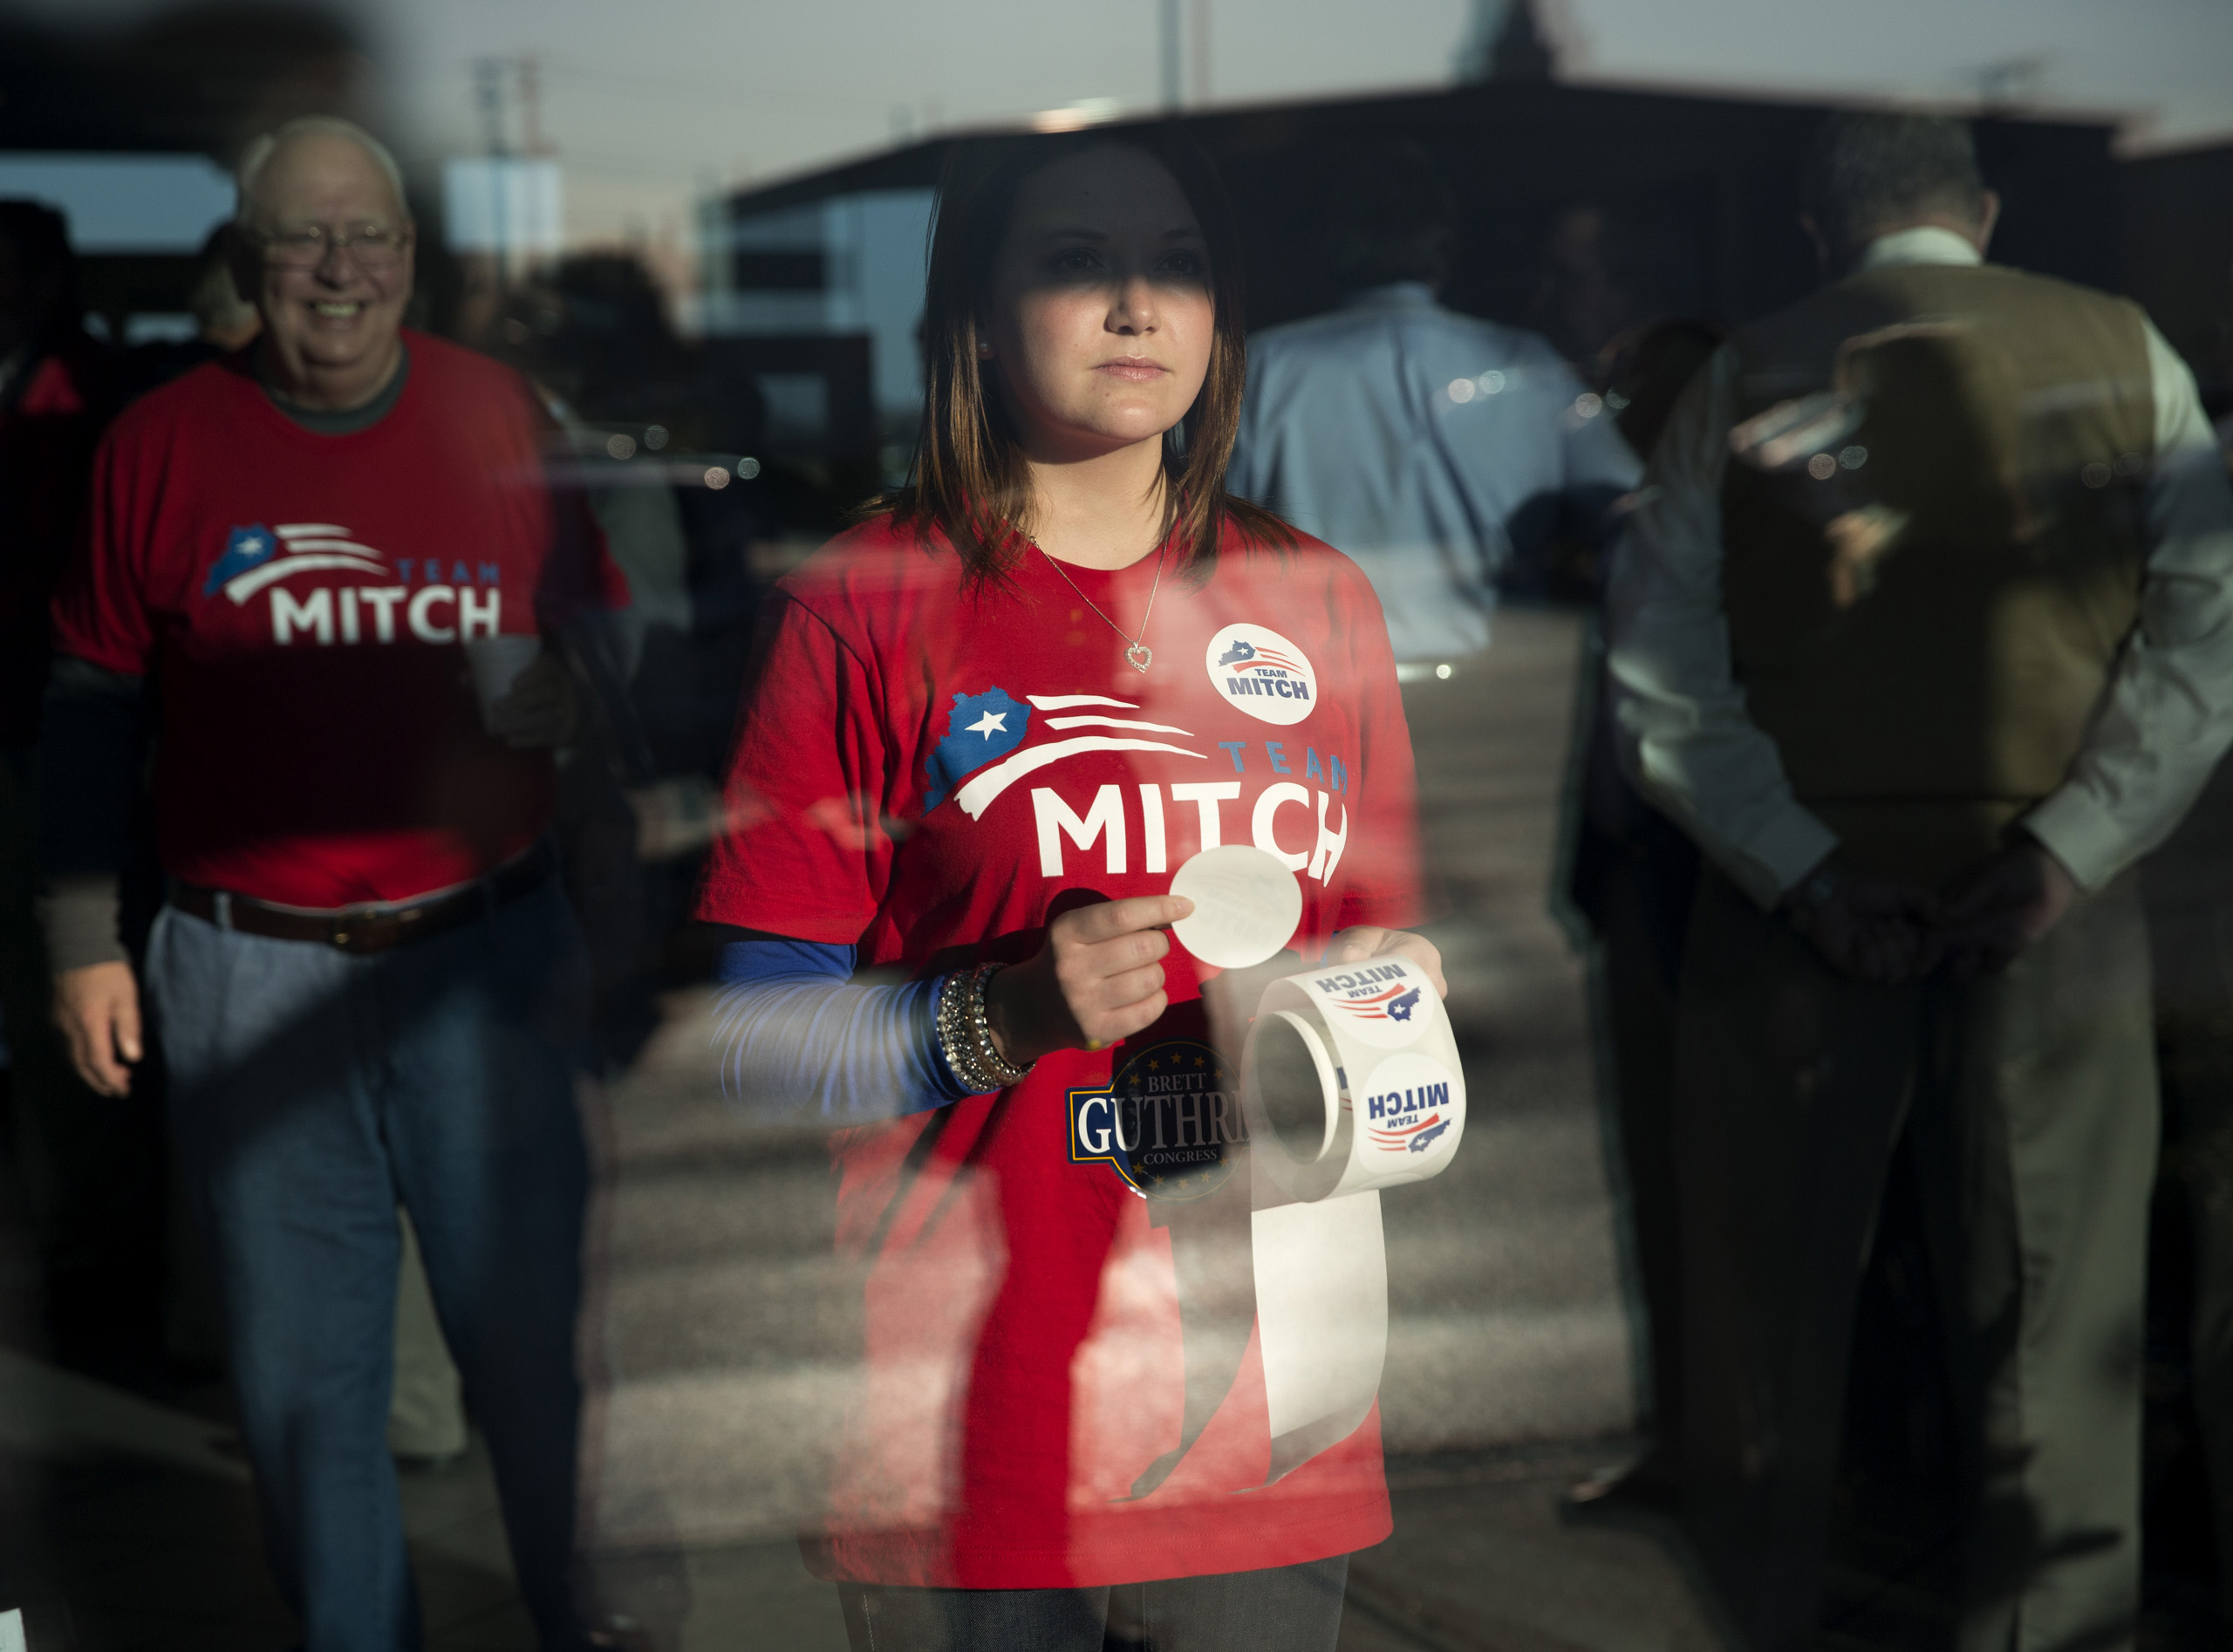 Nov. 3, 2014. Supporters of Sen. Mitch McConnell attend a campaign rally at Bowling Green-Warren Co. Regional Airport in Bowling Green, Ky.